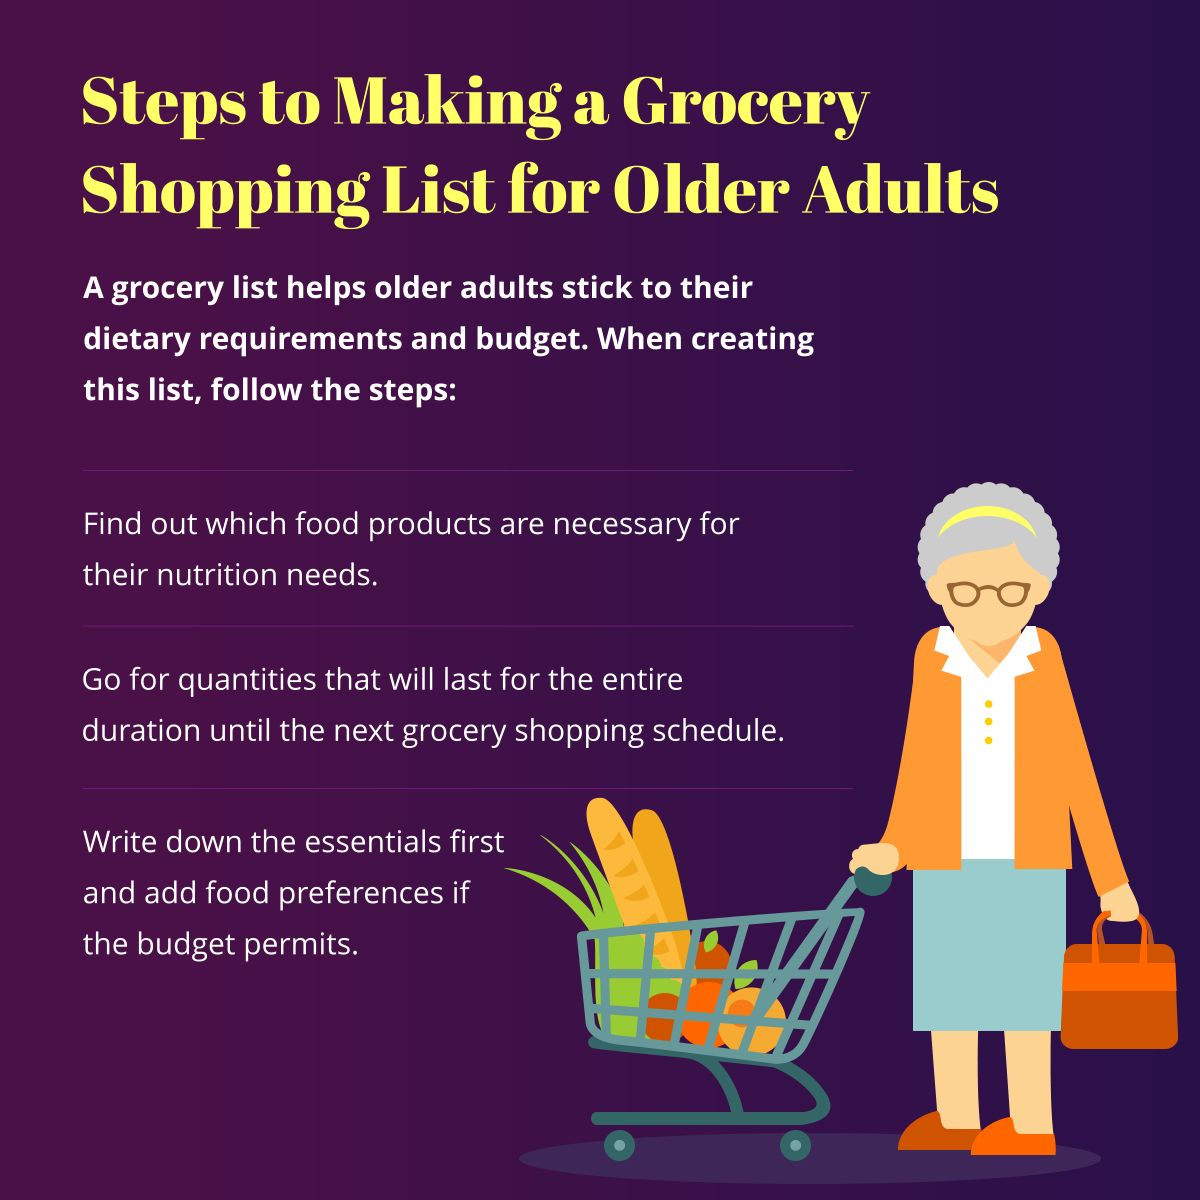 Steps To Making A Grocery Shopping List For Older Adults